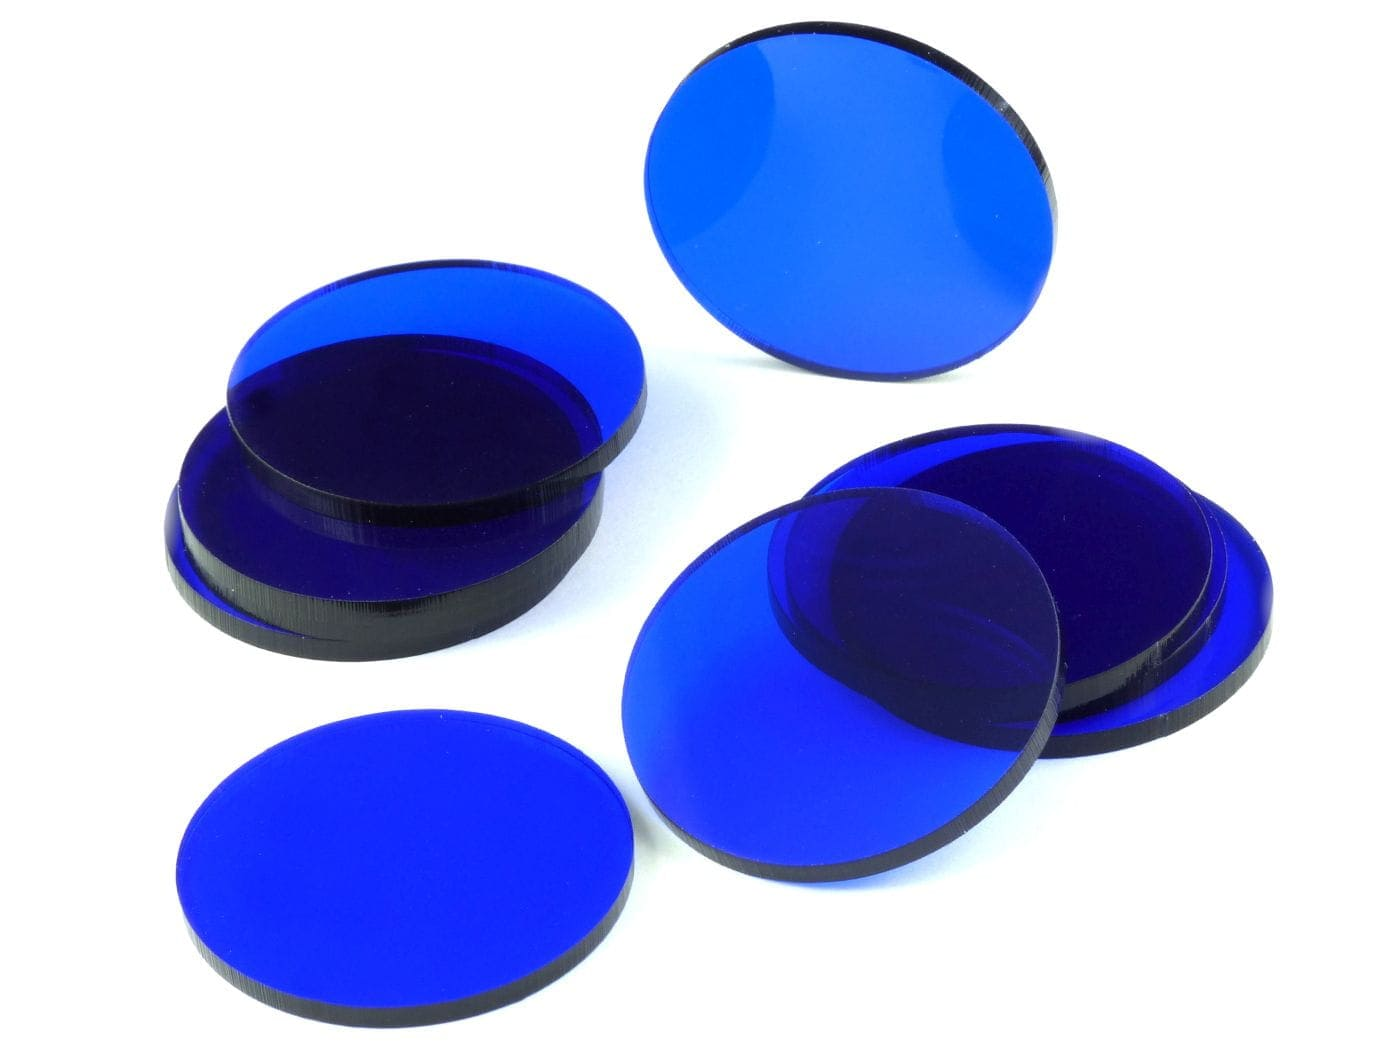 Acrylic miniature bases (10 pcs), round, clear, blue 50 x 3 mm - 1